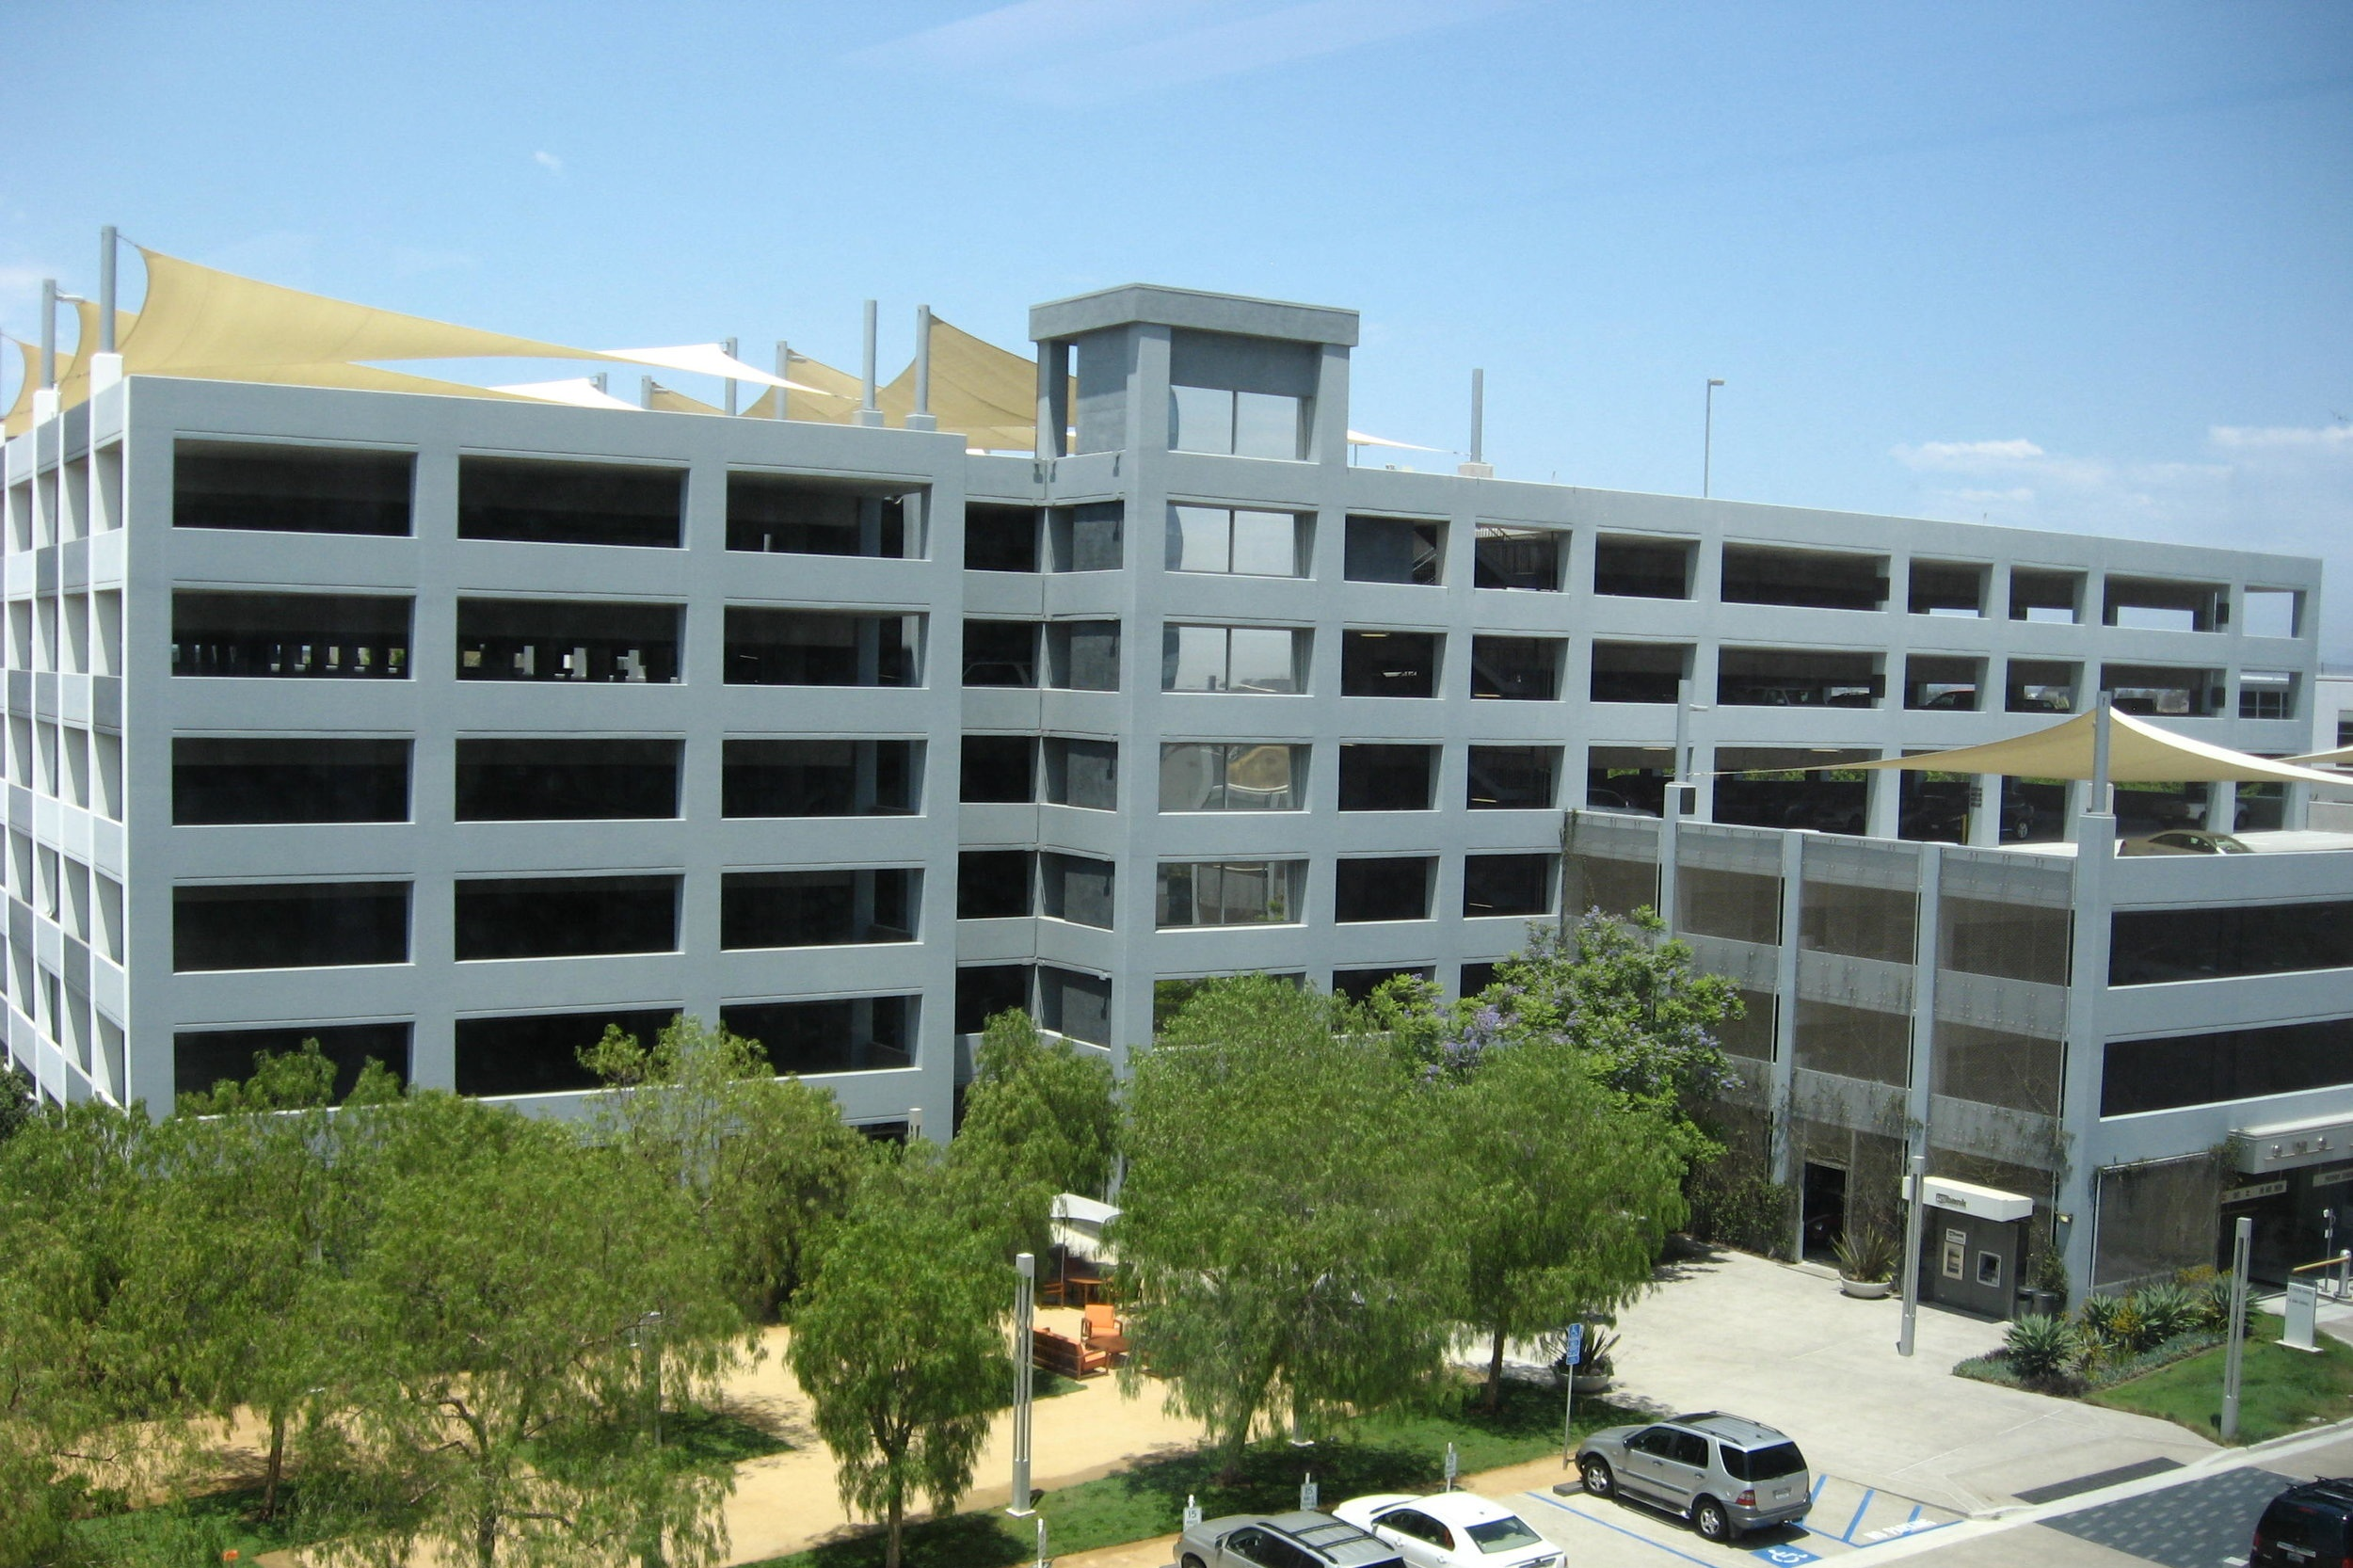 LA JOLLA COMMONS GARAGE EXPANSION PARKING STRUCTURE - La Jolla, CA:Seven story post-tensioned concrete structure addition for 483 cars.Contractor: ARB STRUCTURESArchitect: INTERNATIONAL PARKING DESIGN (IPD)